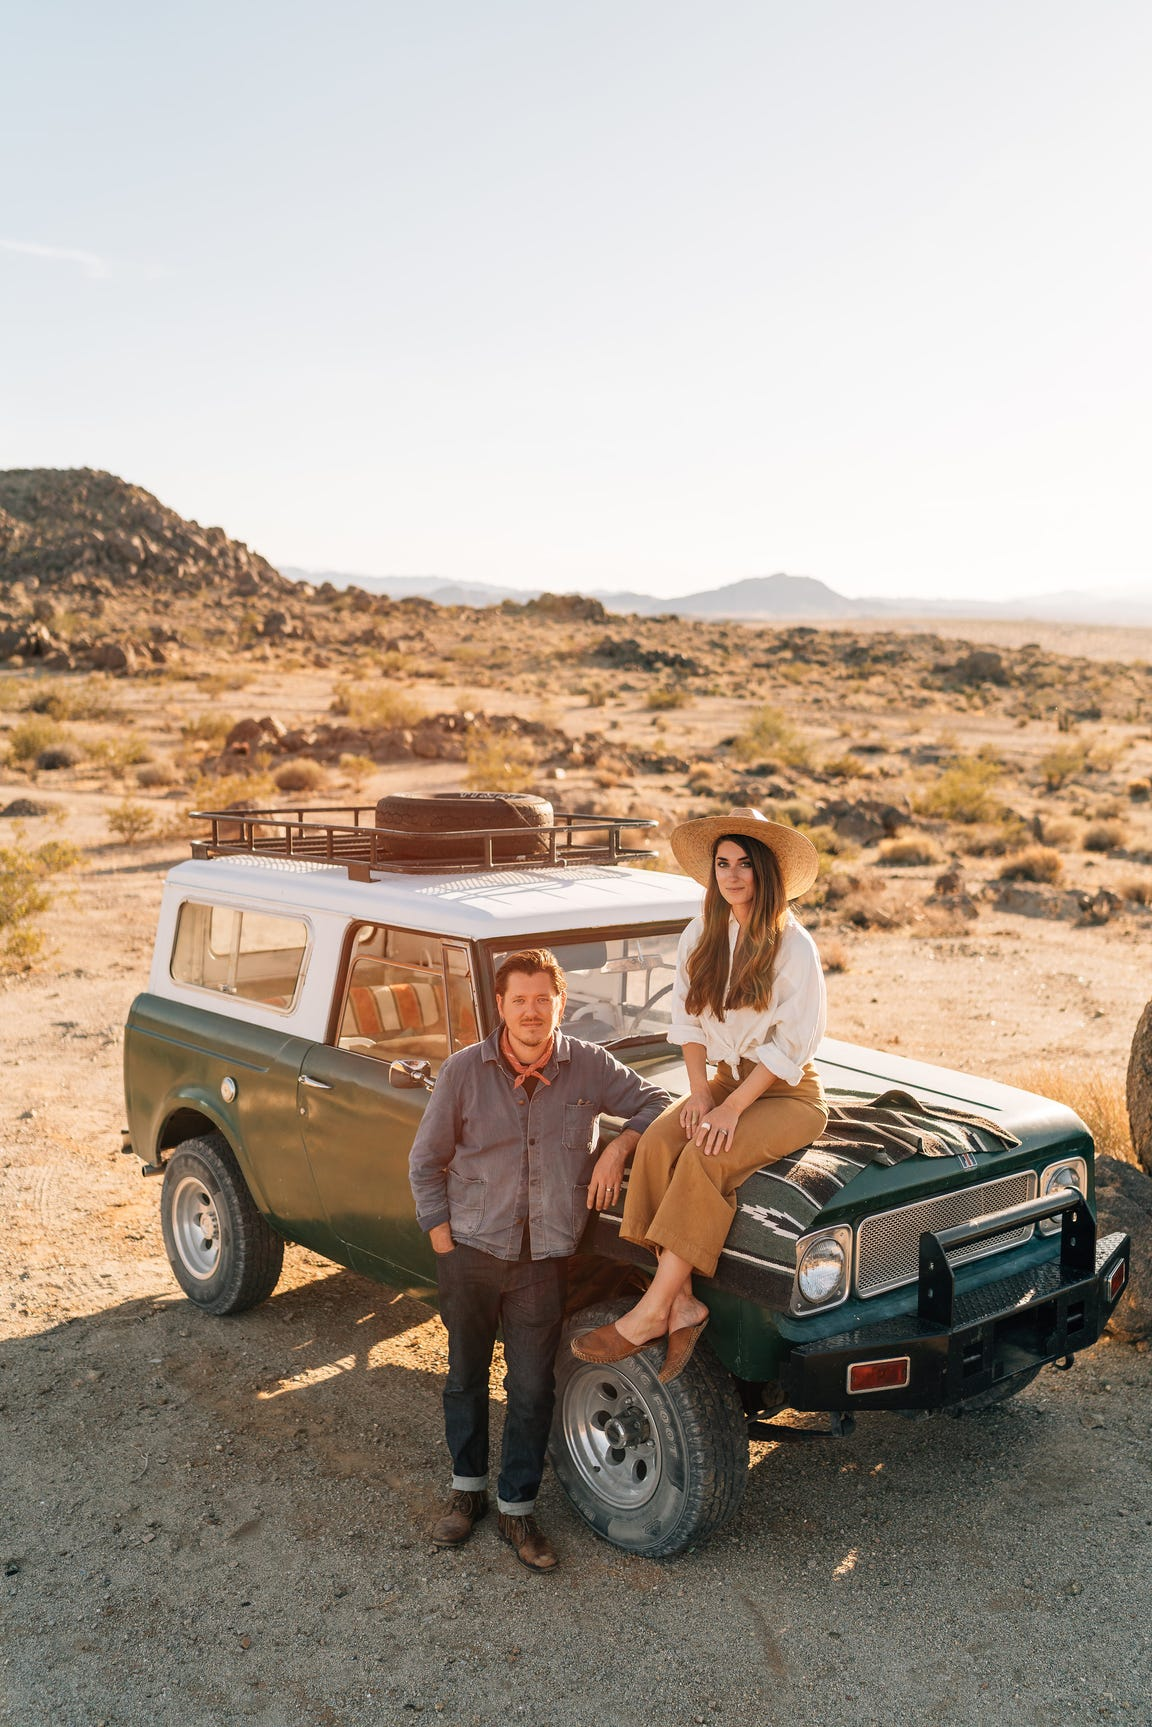 Rich (left) and Sara Combs in Joshua Tree